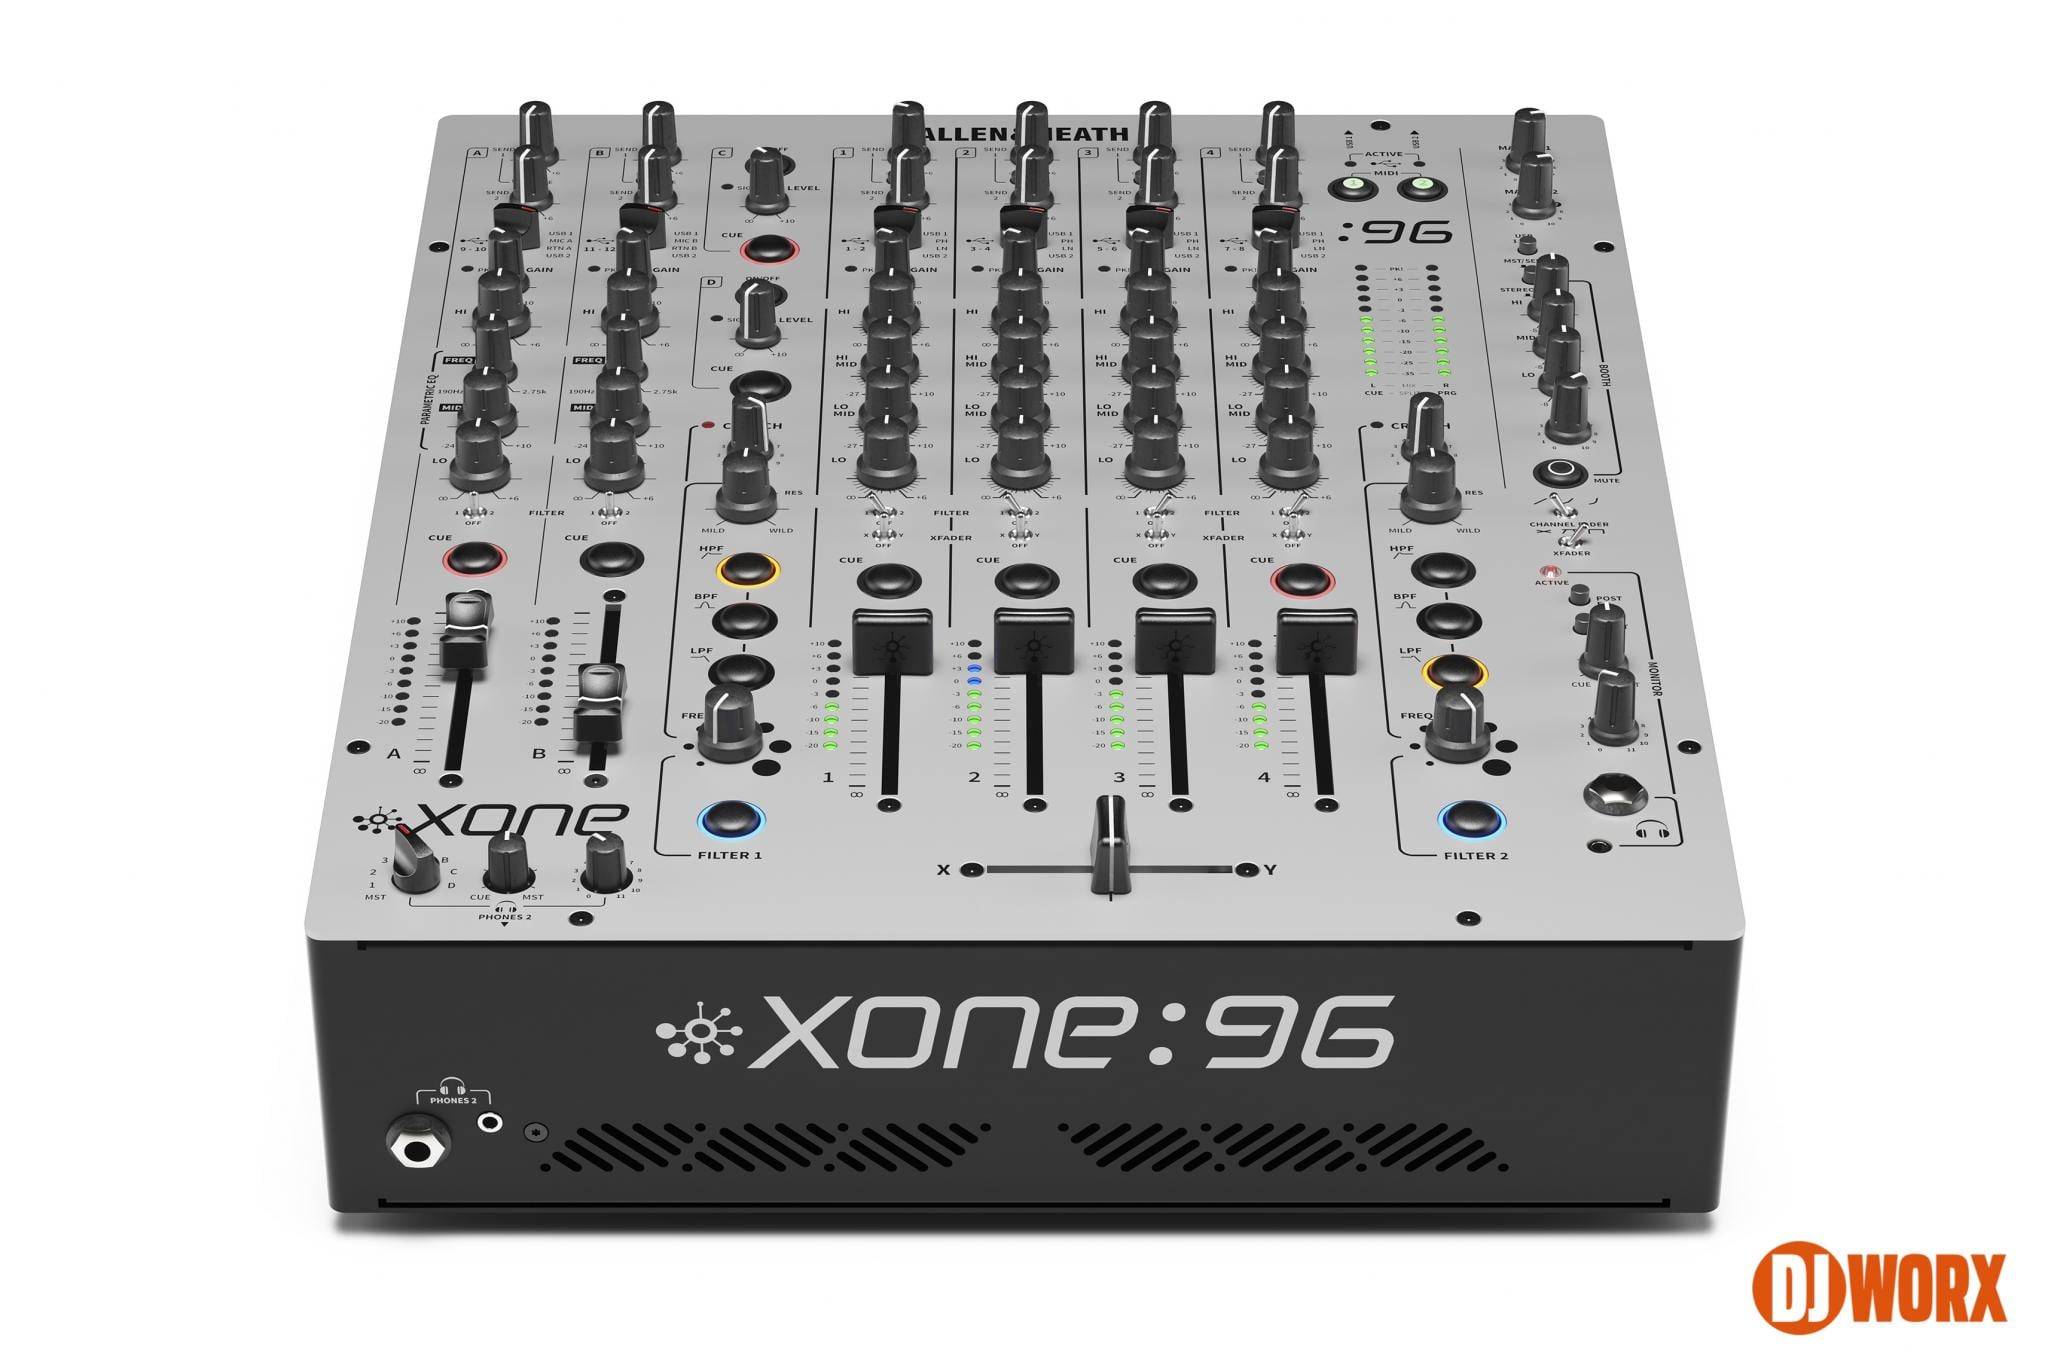 REVEALED: Allen & Heath Xone:96 aka Xone:92 mk2 4